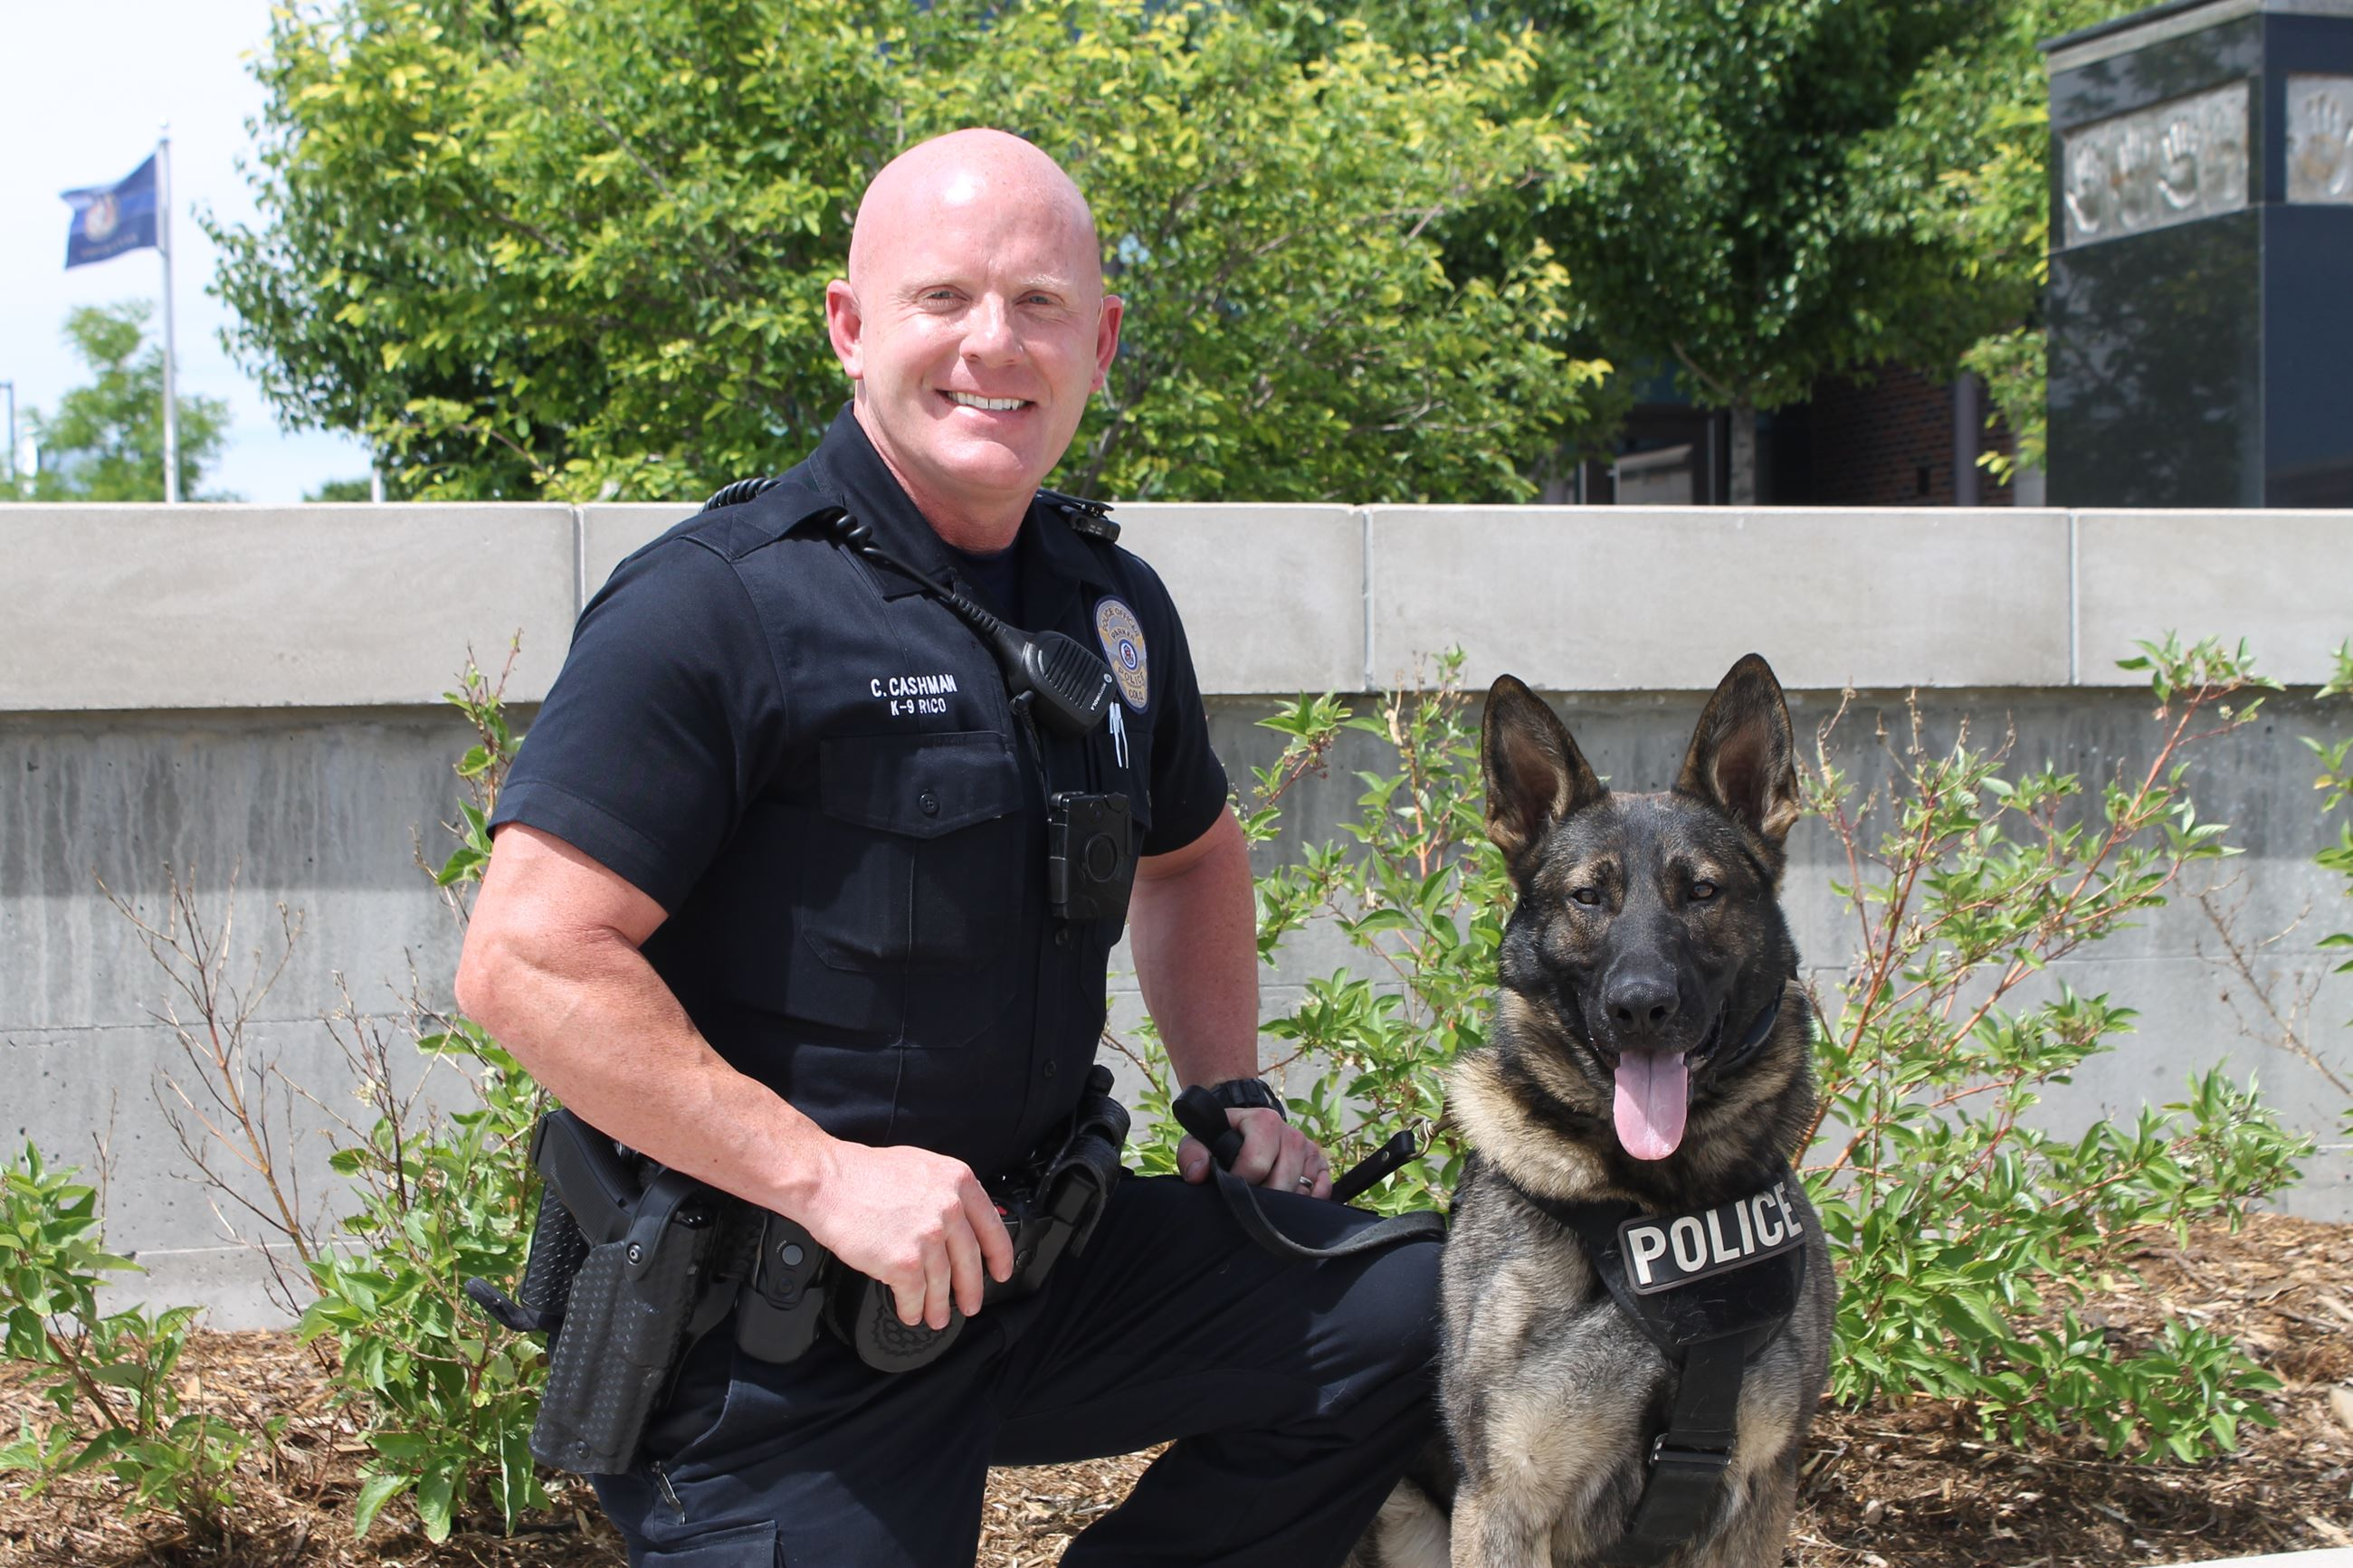 Officer Cashman kneeling next to Rico